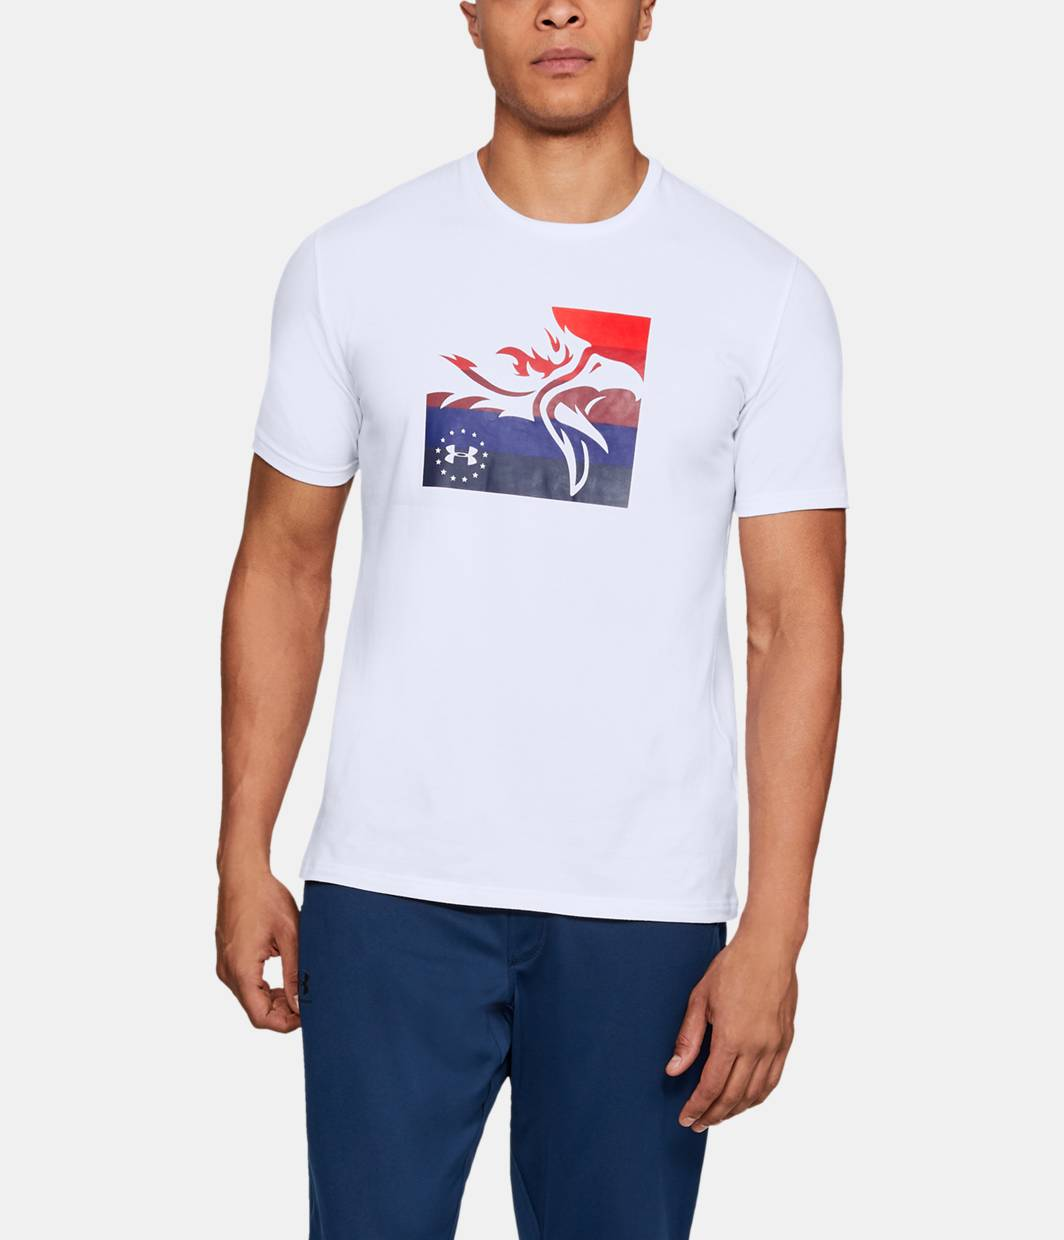 Men's Graphic Tees | Under Armour US